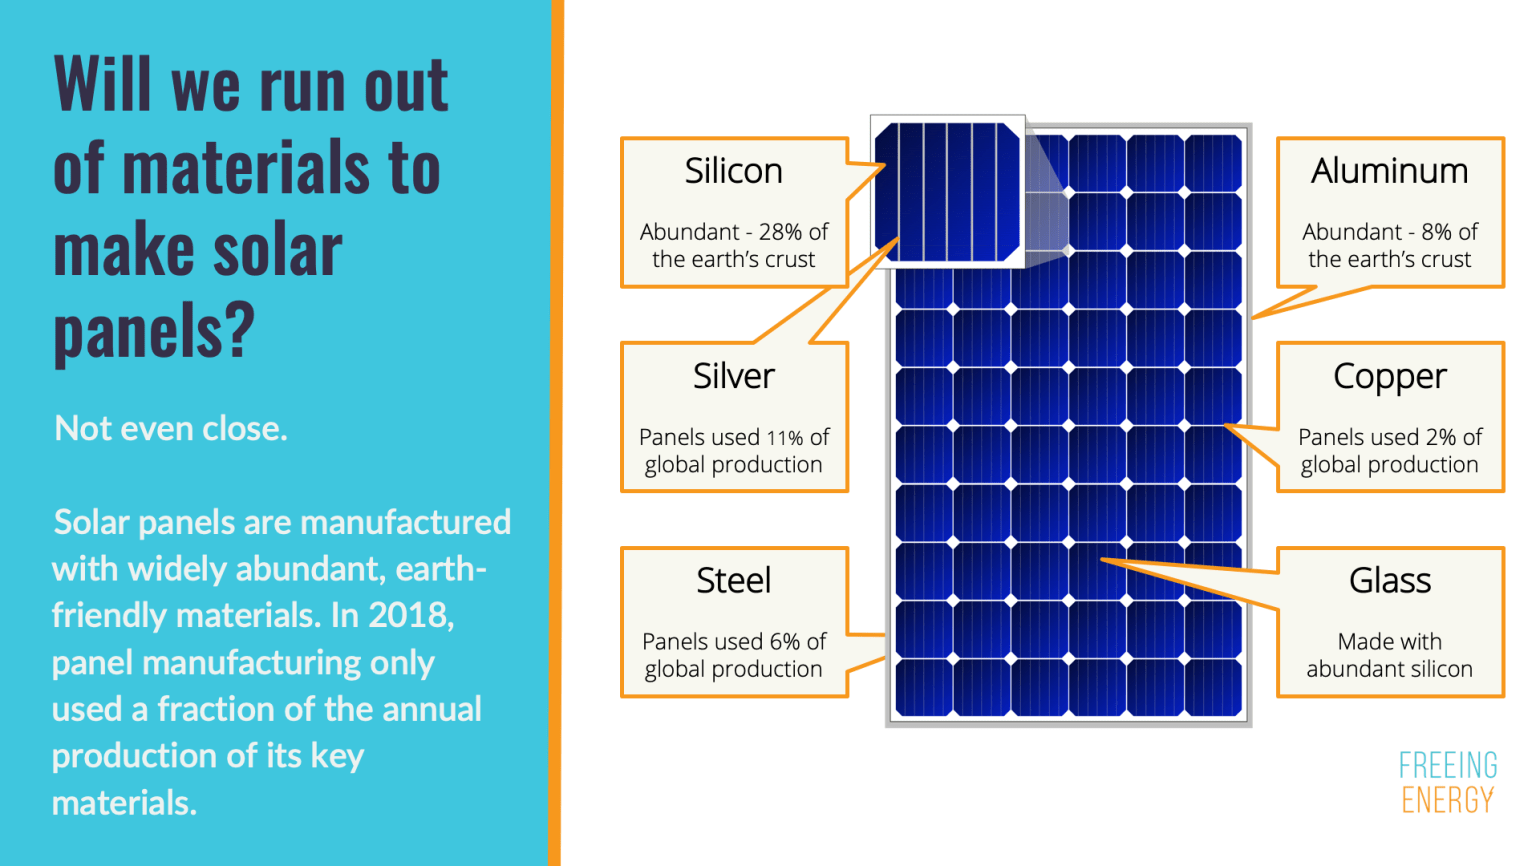 Will we run out materials to make solar panels modules silicon silver steel aluminum copper glass